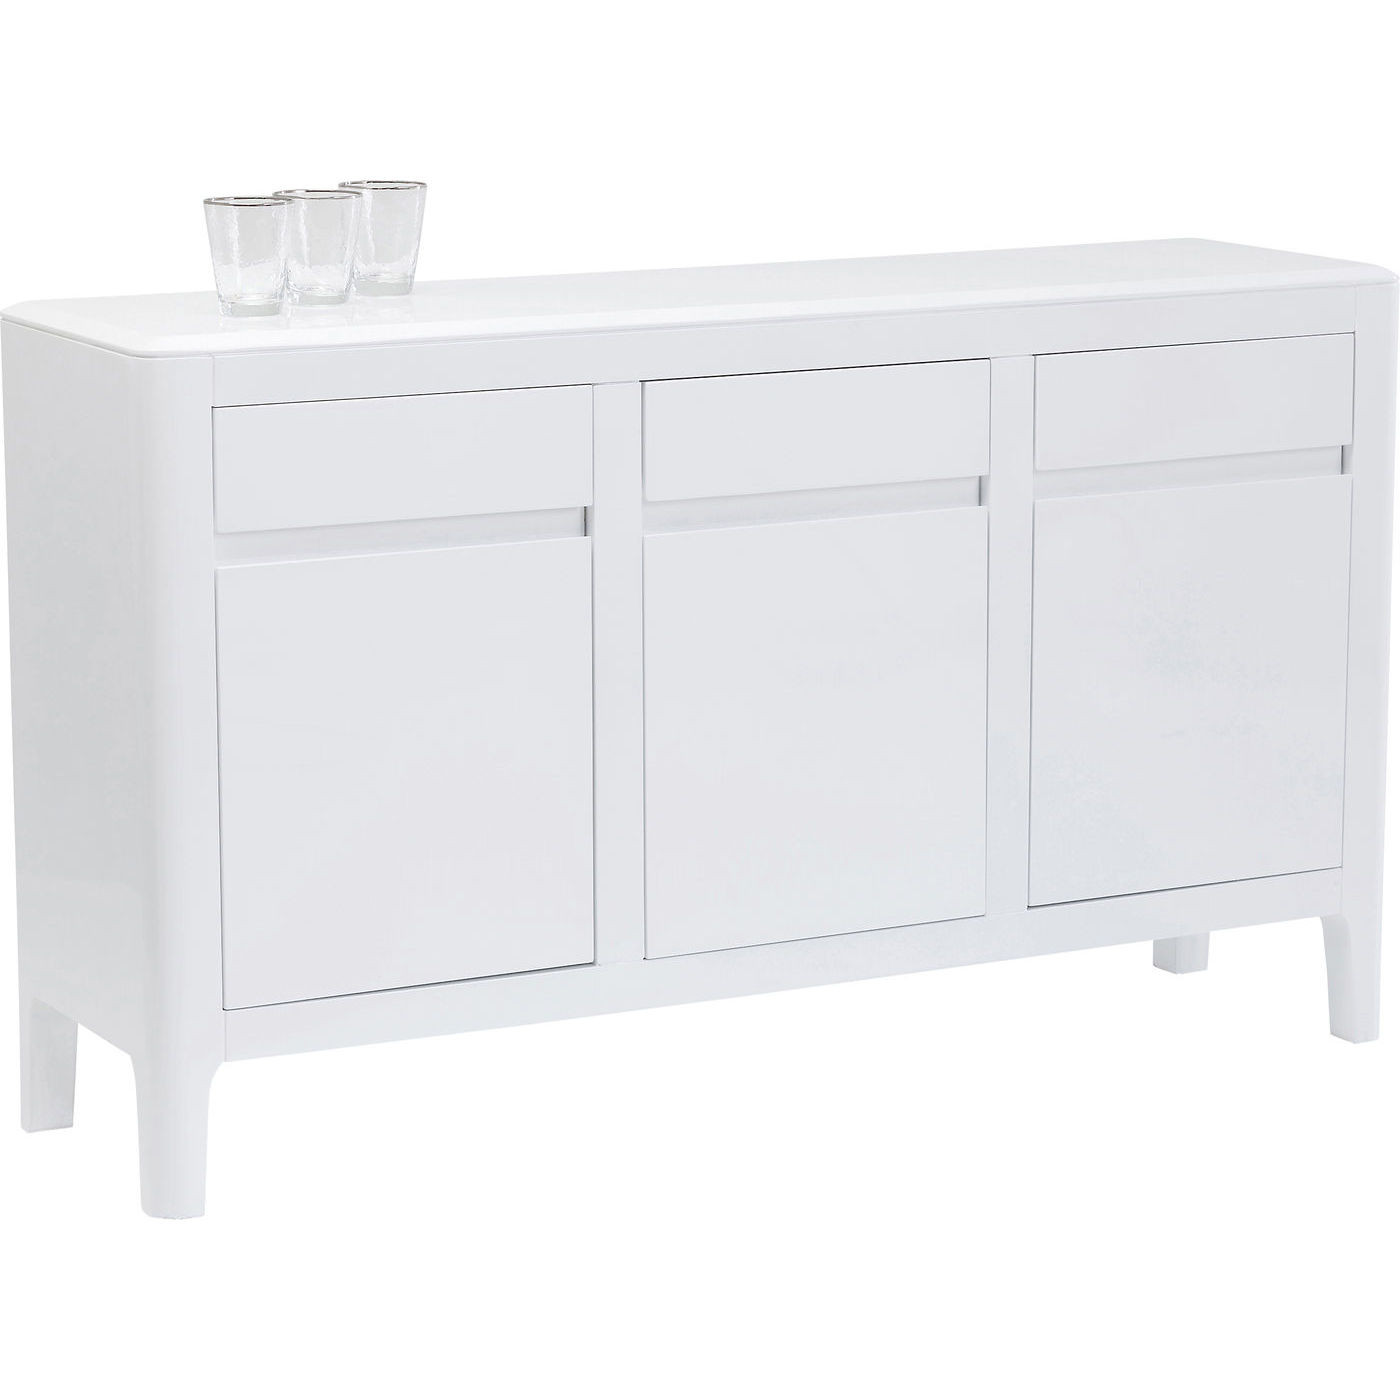 Wohnzimmer Sideboard Shabby Brooklyn White Sideboard Sideboards Kommoden